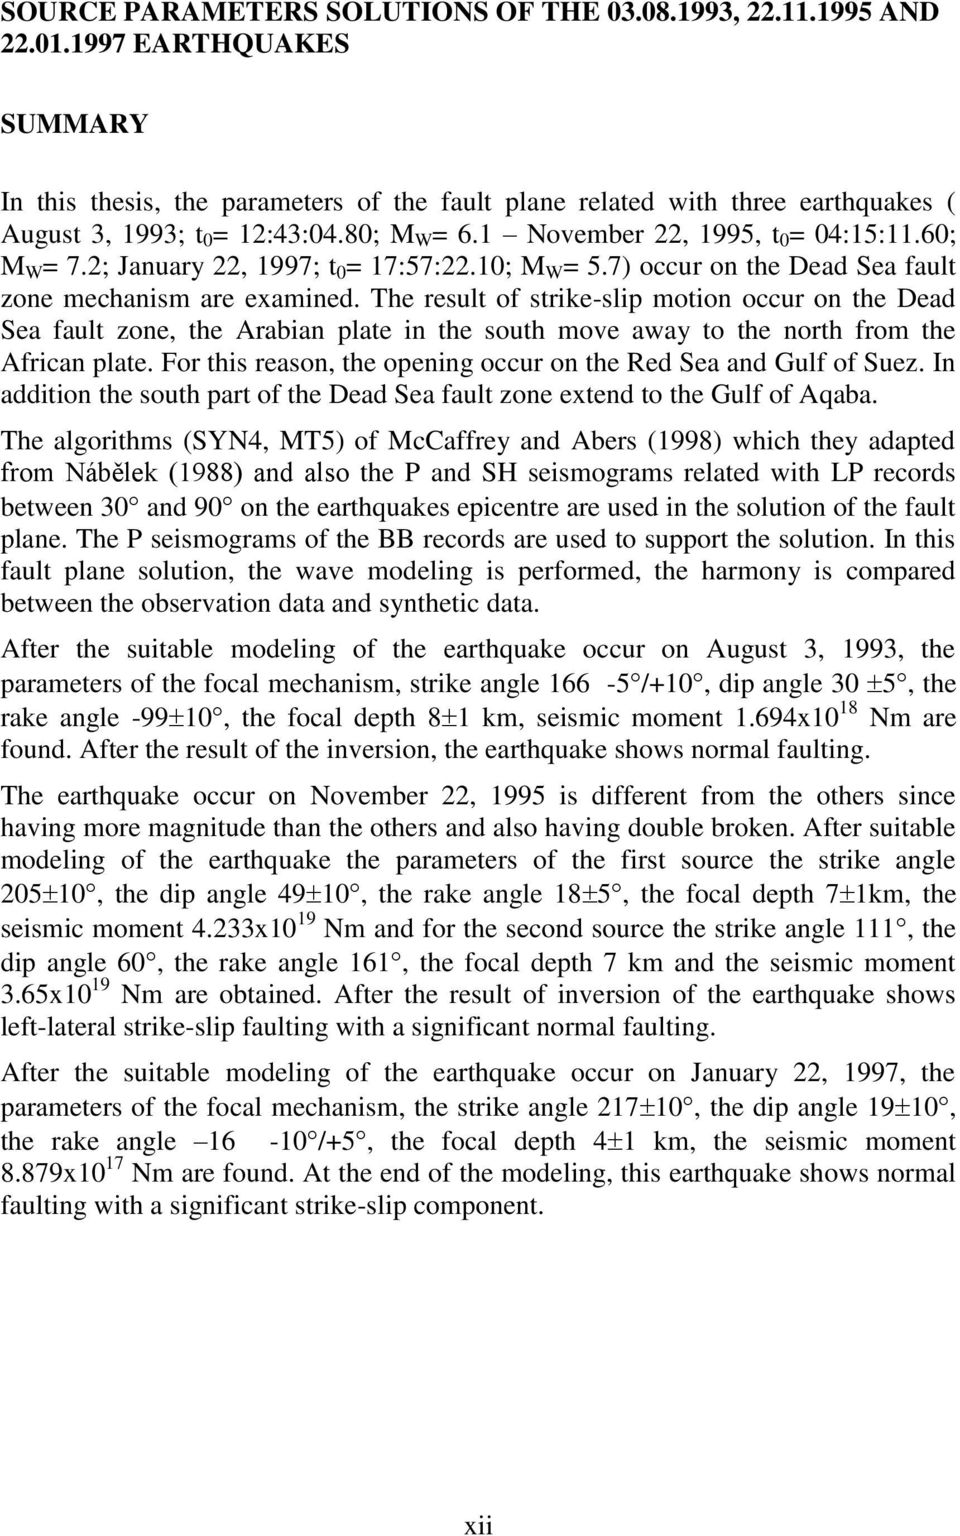 2; January 22, 1997; t 0 = 17:57:22.10; M W = 5.7) occur on the Dead Sea fault zone mechanism are examined.